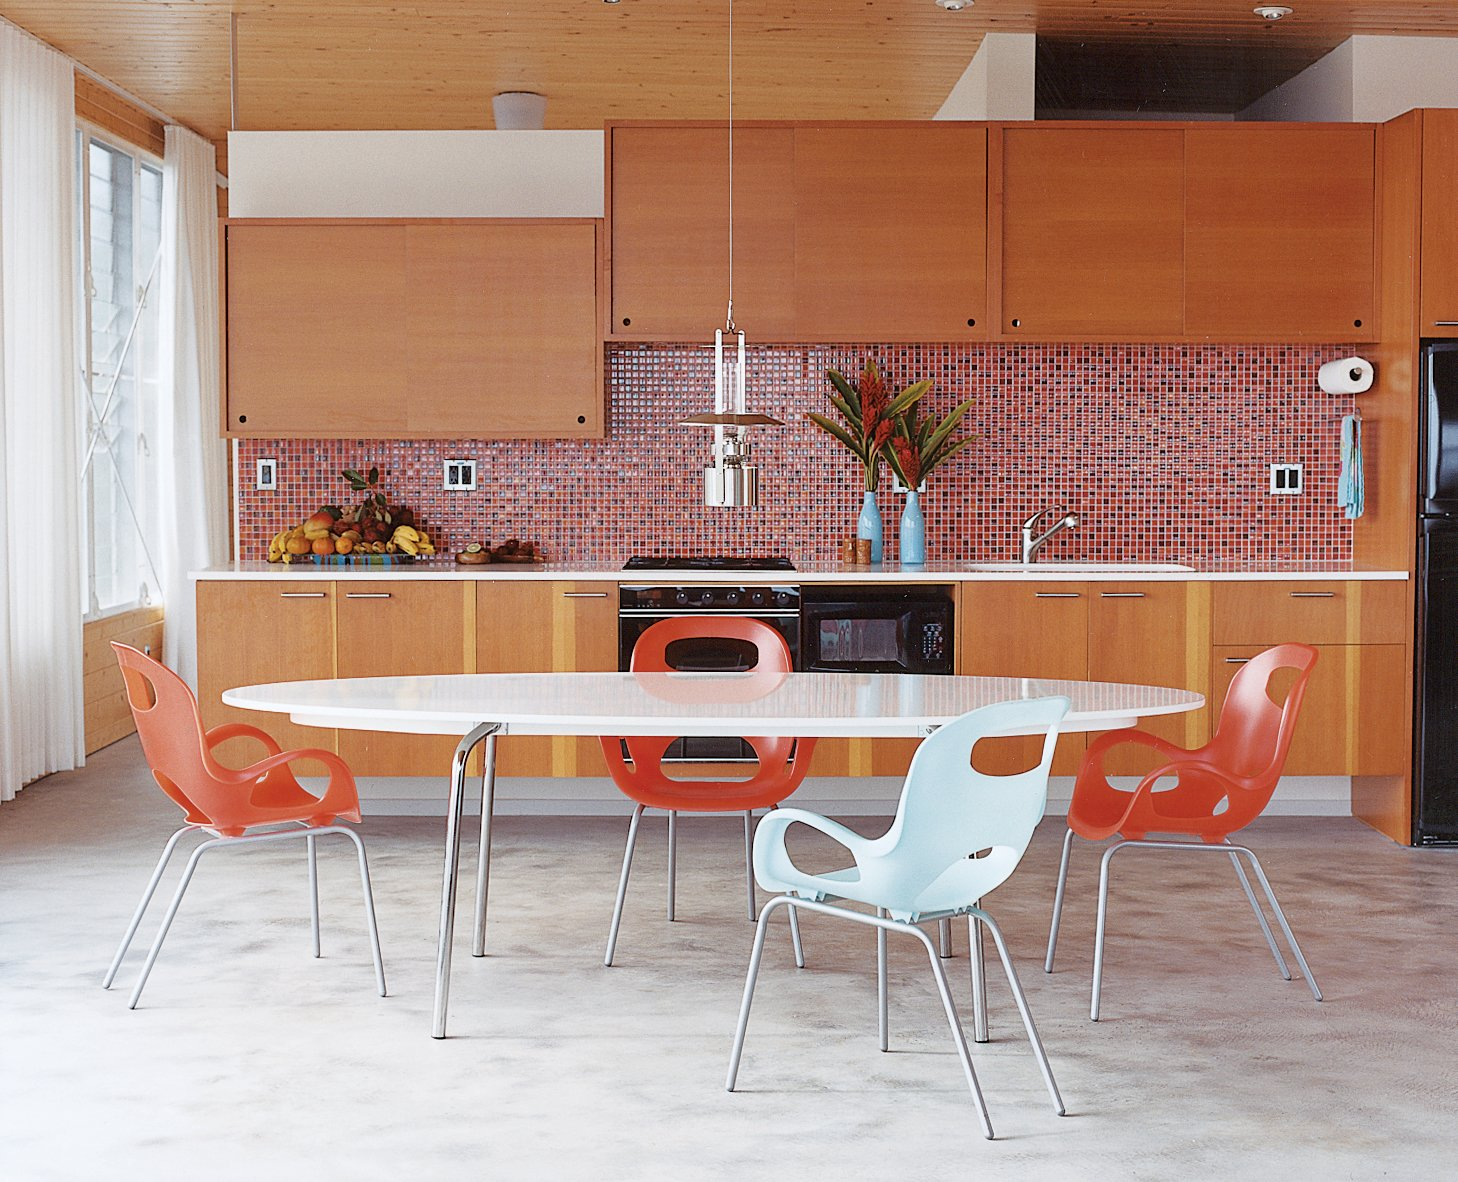 The Concrete Floor Takes On A Silky Appearance In The Kitchen And Dining  Areas. The